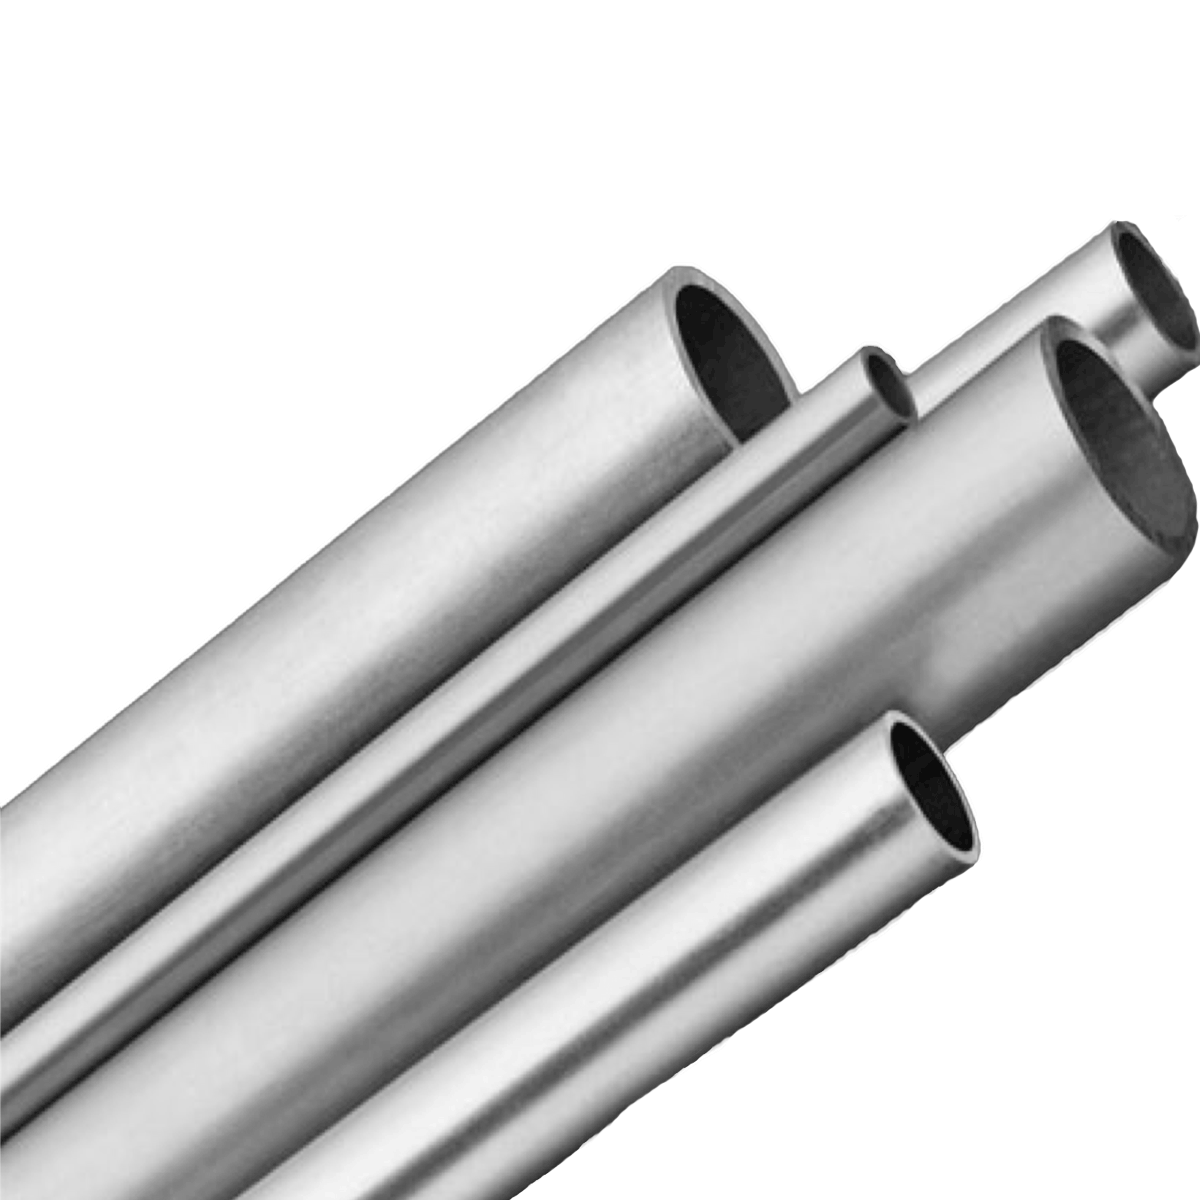 Pneumatic pipes and hoses